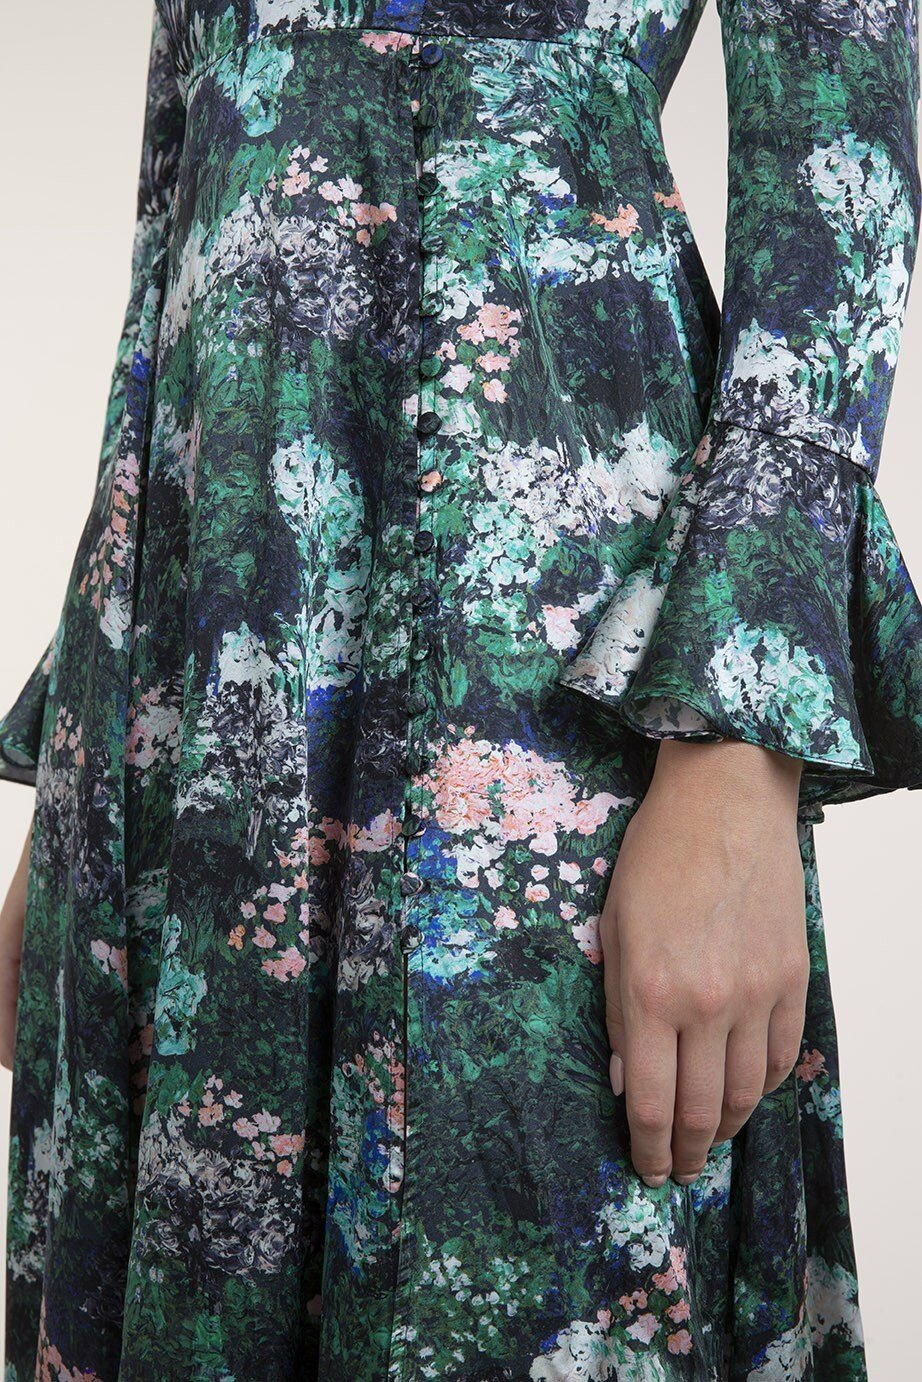 BEULAH'S FAMOUS YAHVI IS BACK - This painterly forest rose quartz print dress has a round neck, long sleeves and a fitted waist. Designed to look effortlessly elegant, the Yahvi forest rose dress is made from 100% silk and has been digitally printed in Italy.